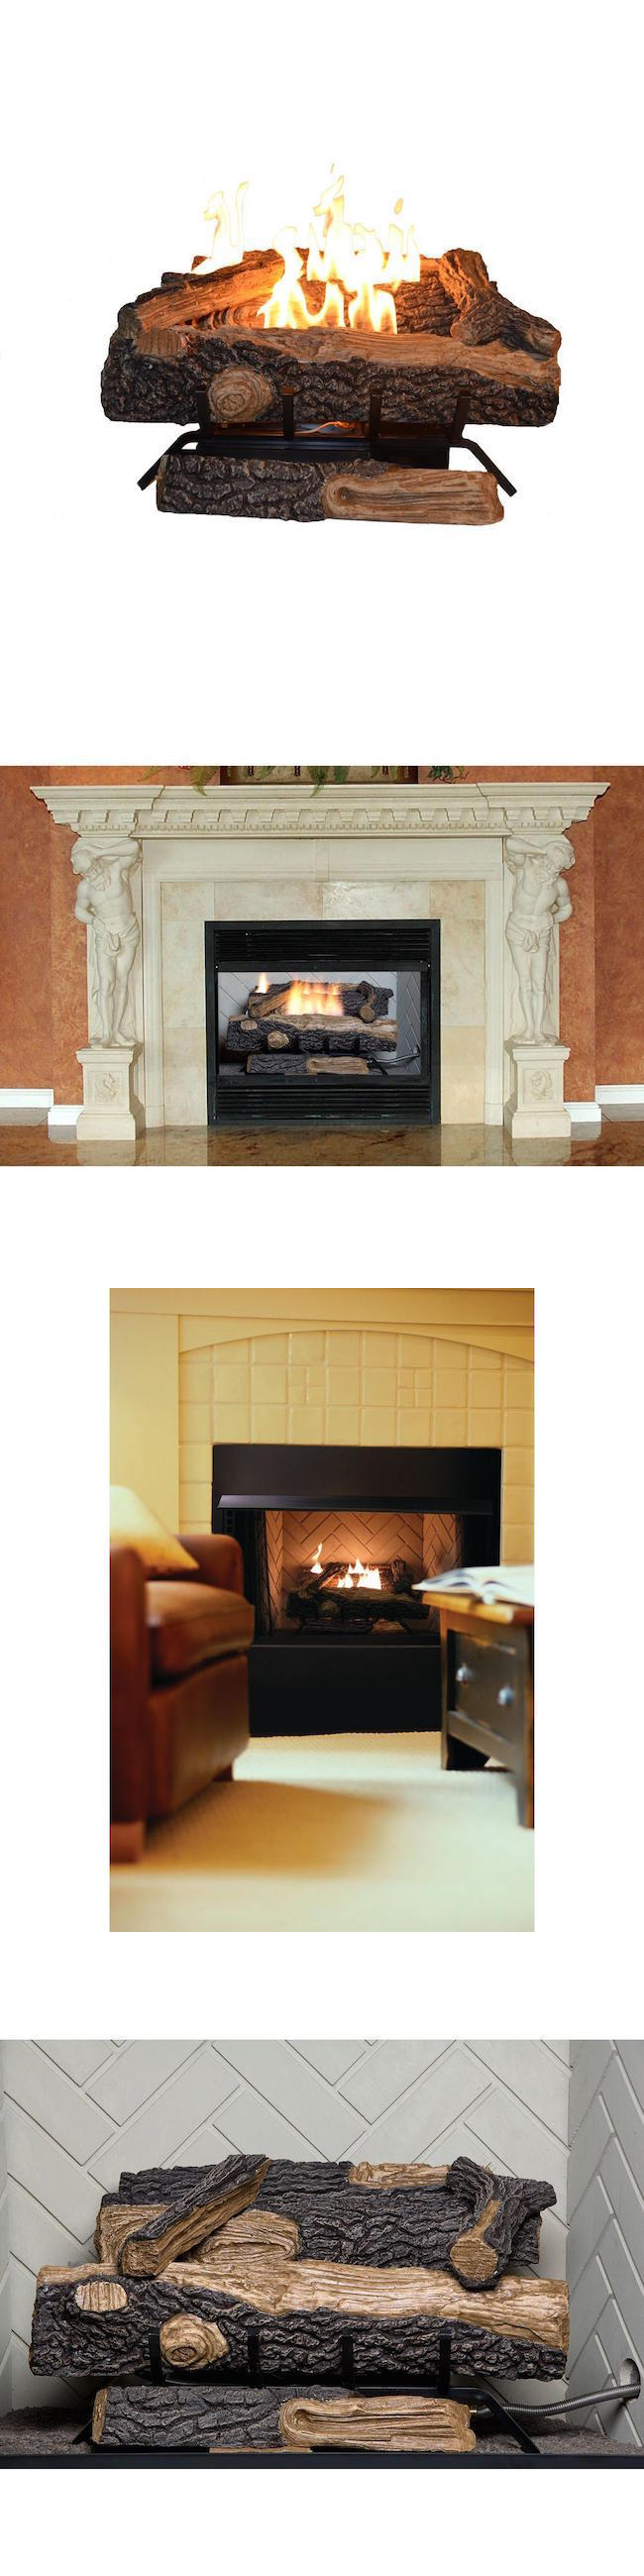 Decorative Logs Stone and Glass 38220: Gas Fireplace Logs Natural ...